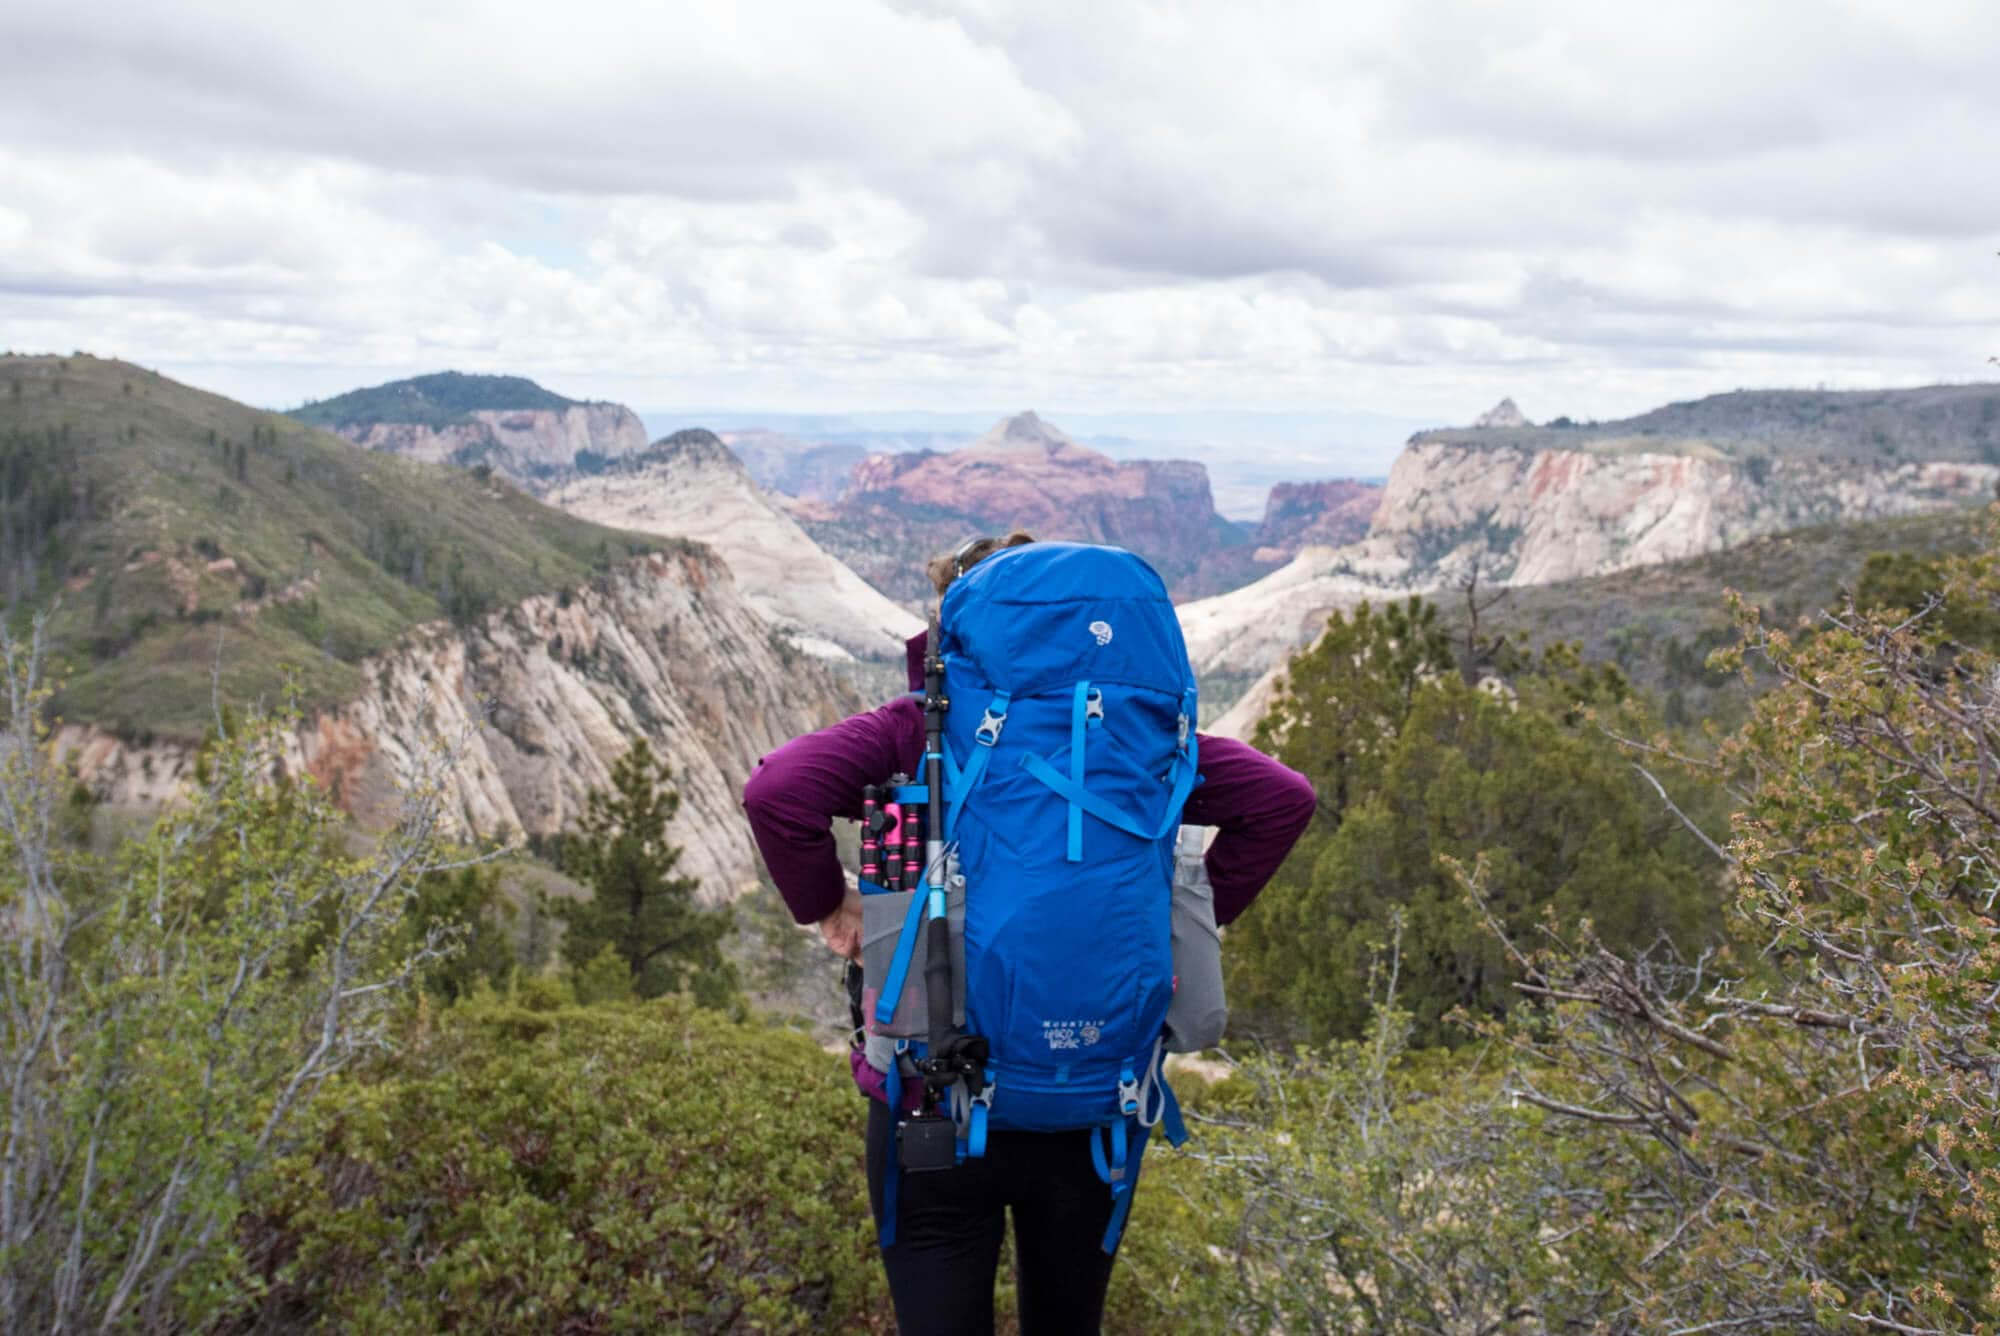 Learn everything you need to know about backpacking packs & the most important factors to consider when choosing a pack for your multi-day adventures. We also share a list of the best backpacking packs for thru-hikers, weekend hikers, and folks on a budget.